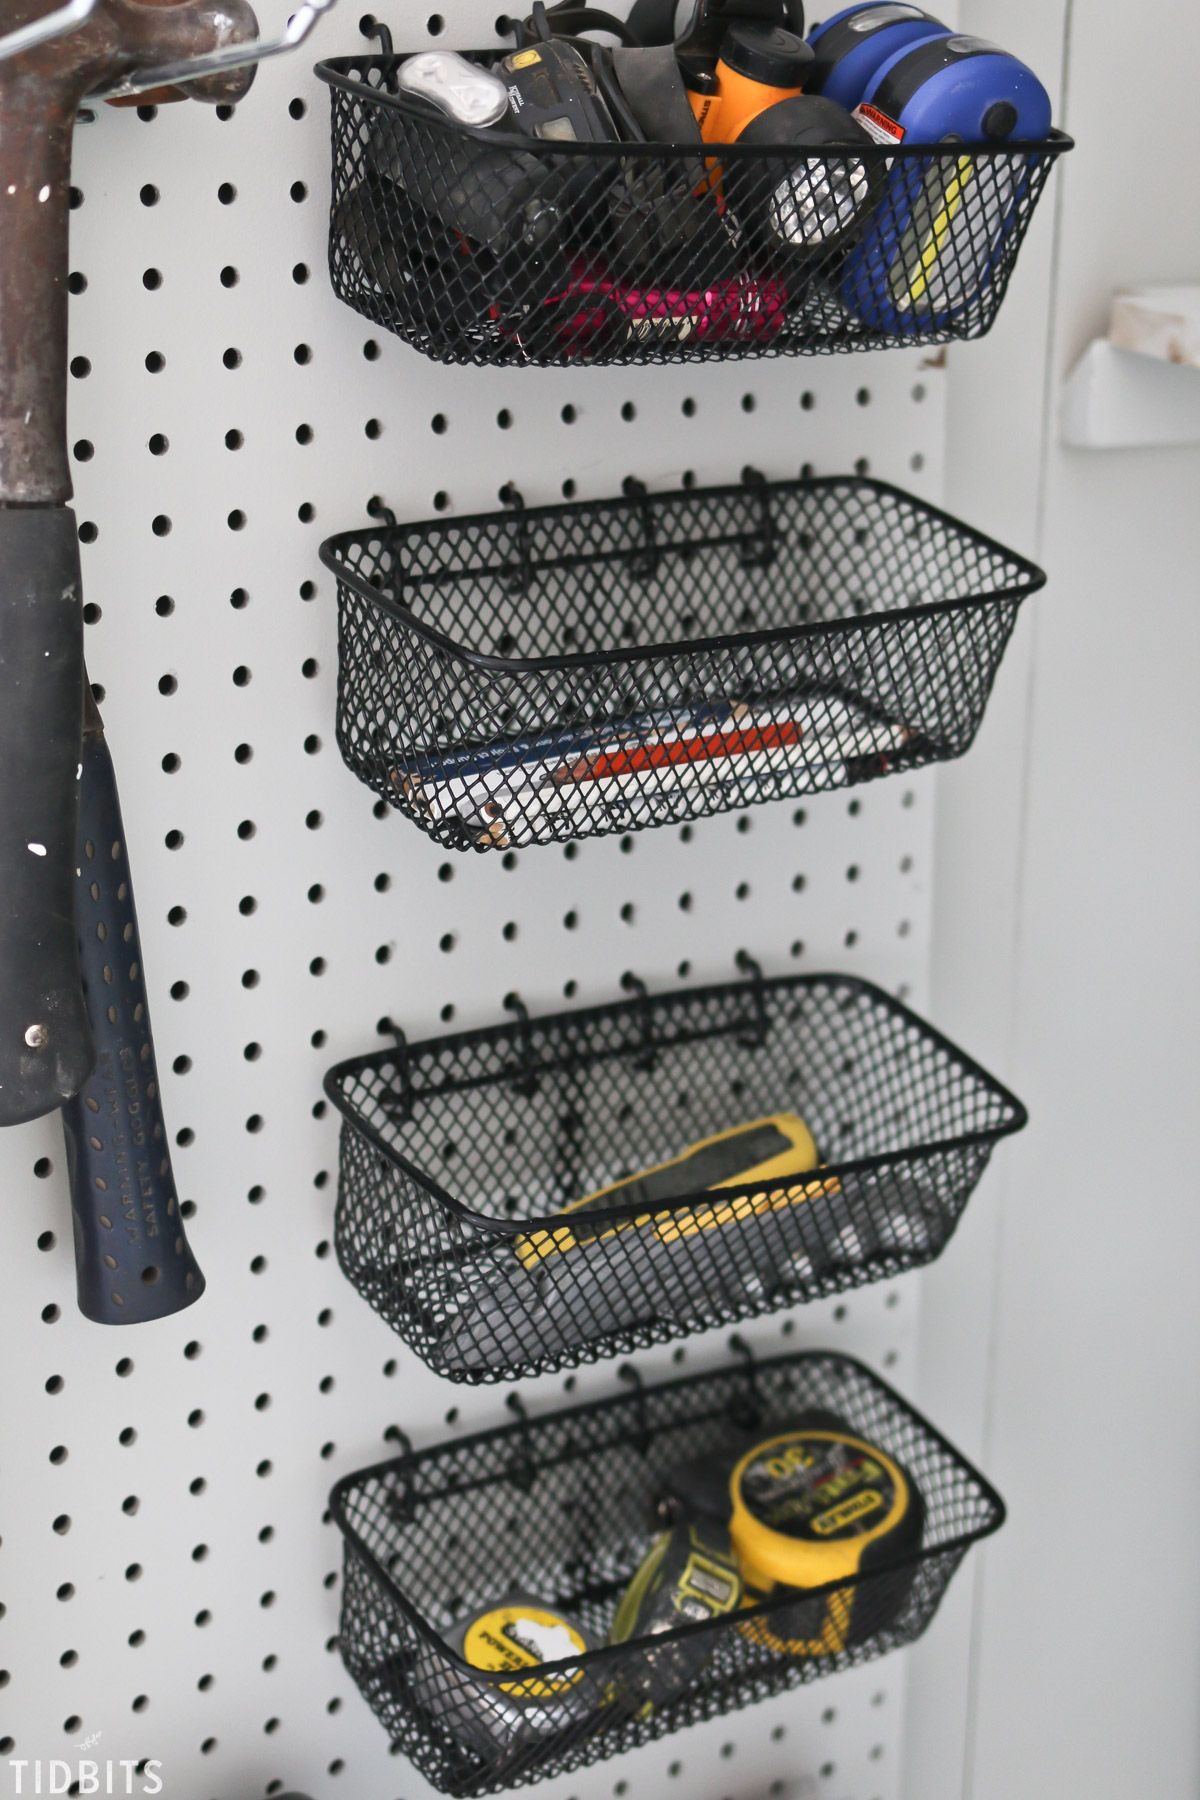 Garage Tool Storage and Organization Ideas #garageideas